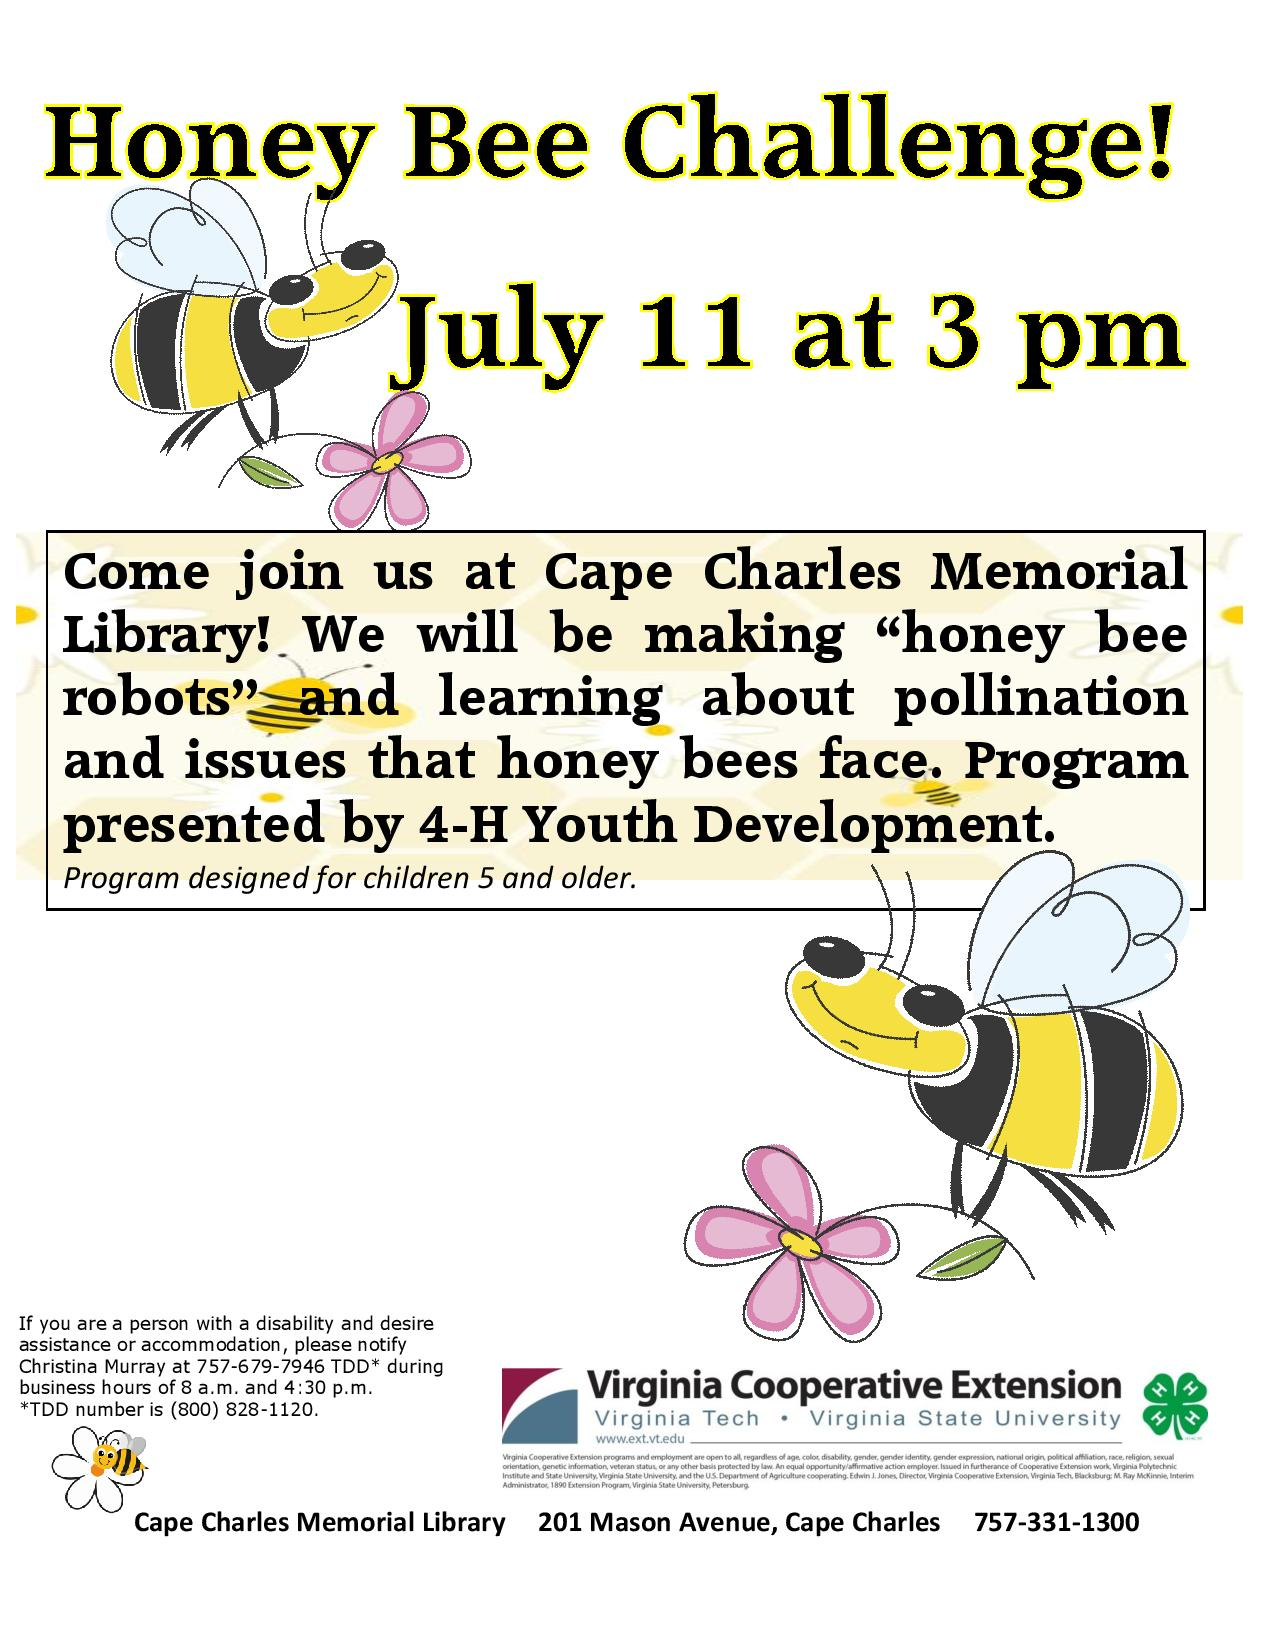 Honeybee Challenge with 4-H @ Cape Charles Memorial Library